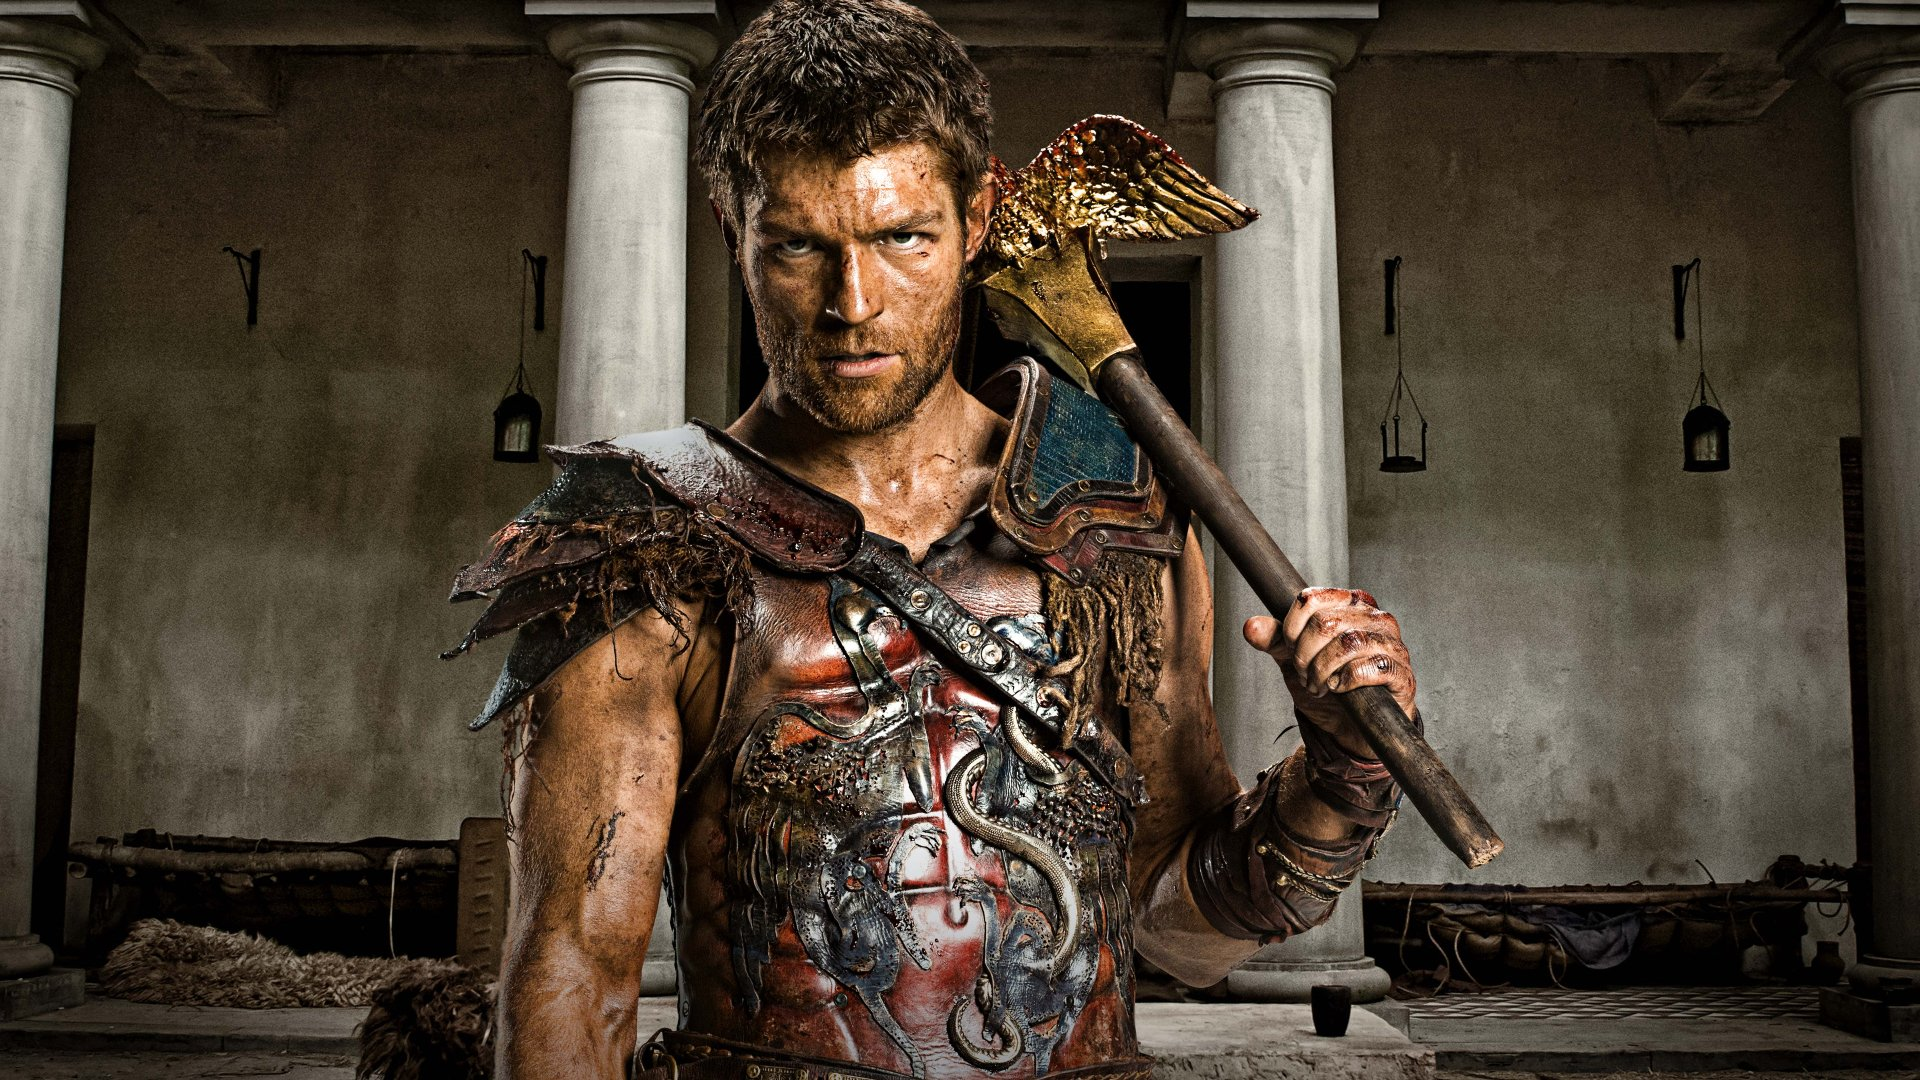 Cool Wallpapers Hd Iphone 7 Spartacus 4k Ultra Hd Wallpaper And Background Image